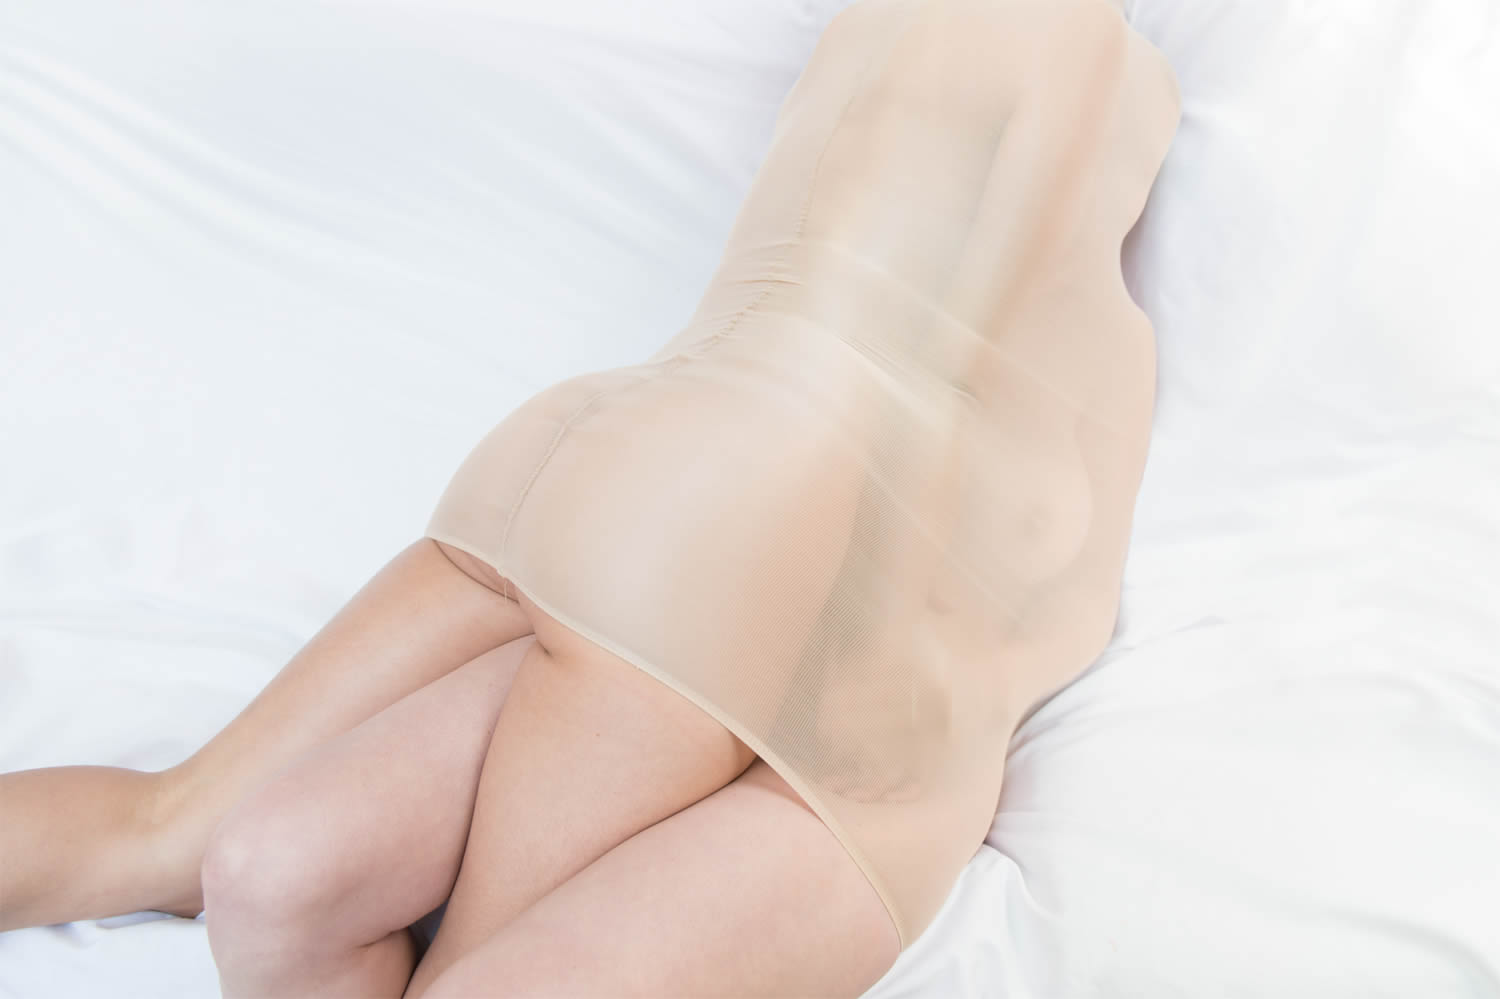 two women wrapped in pantyhose, flush photo series